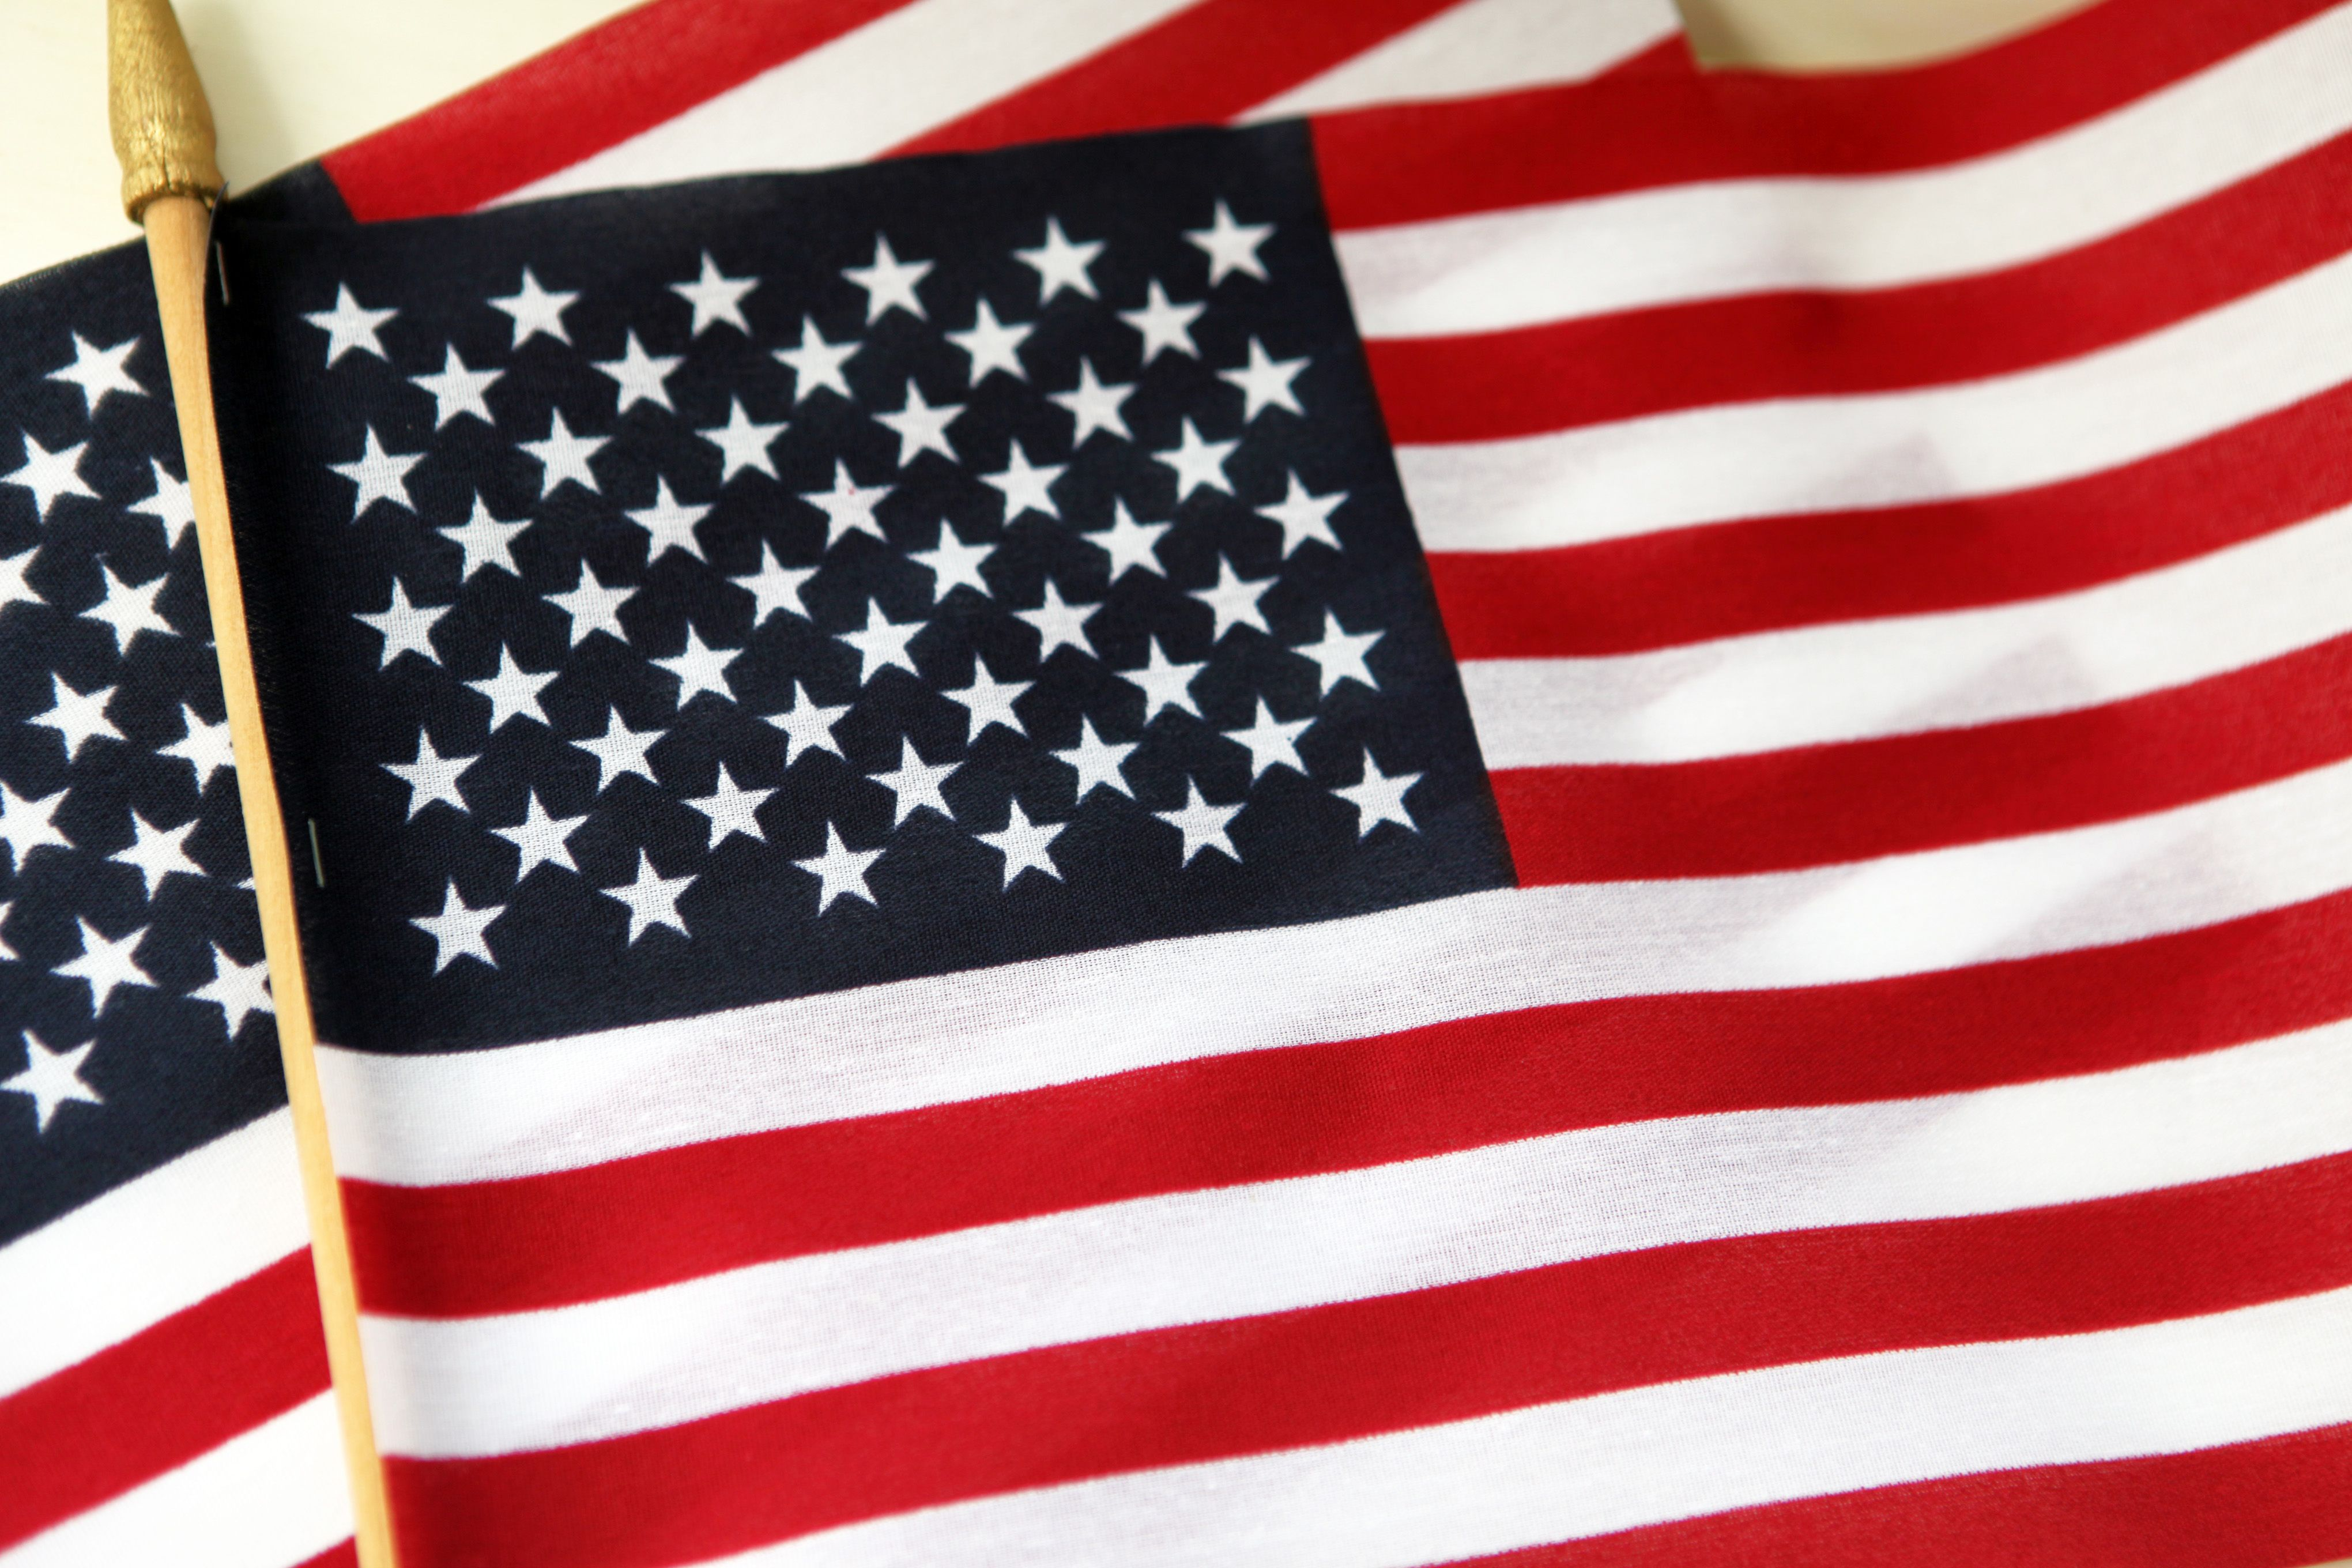 Easy Usa Flag Facts For Kids Article To Use With Unit Day